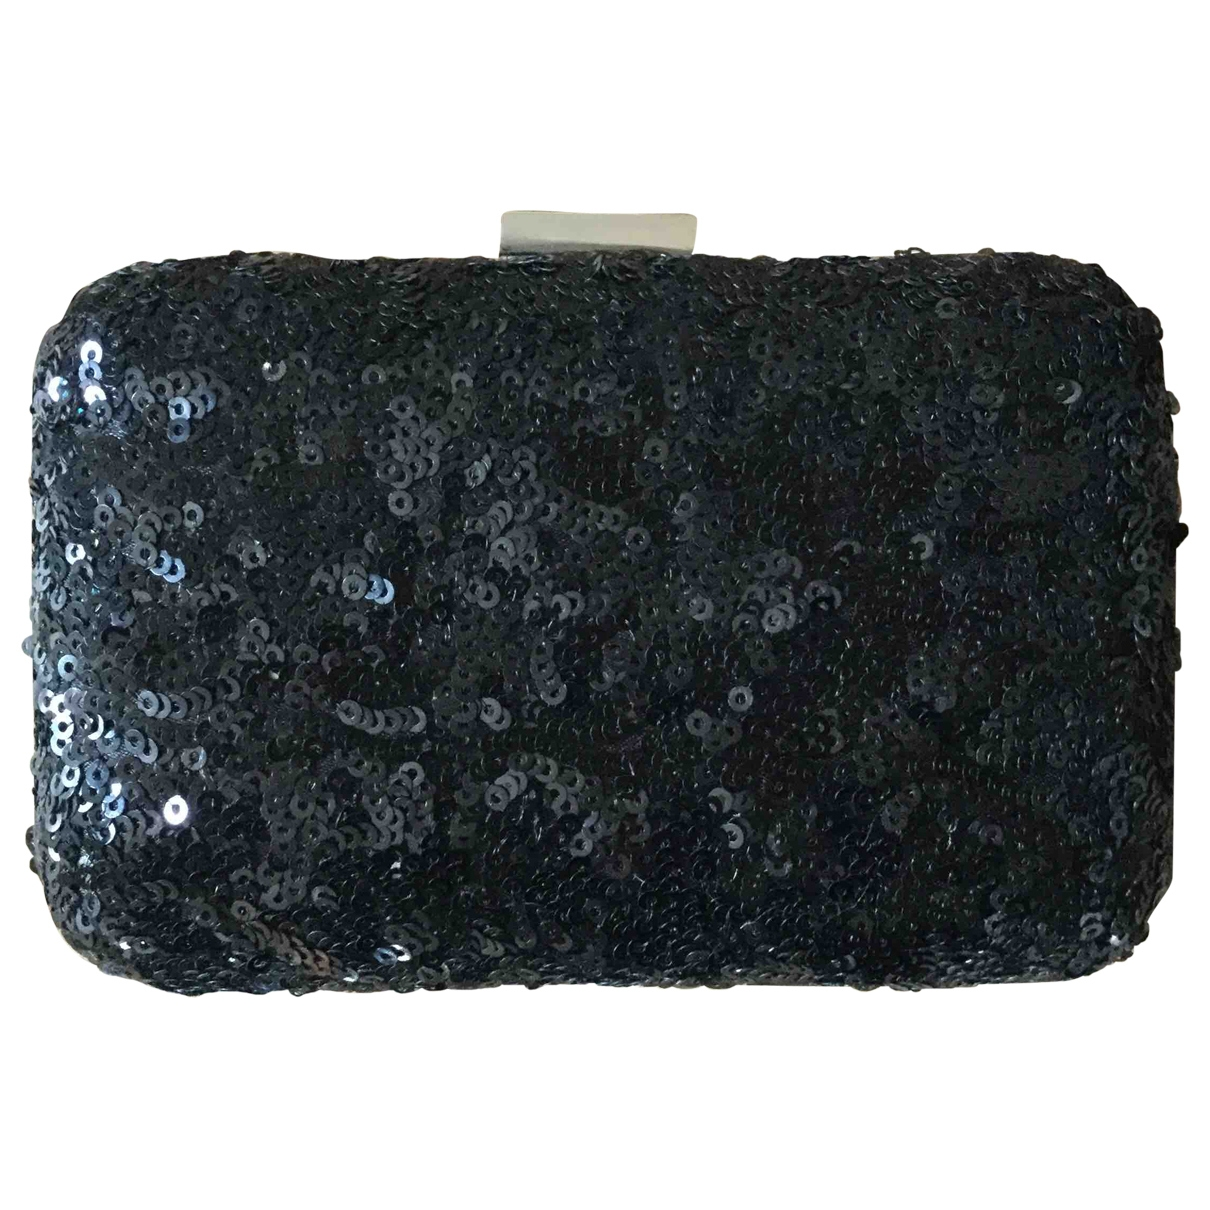 Non Signé / Unsigned \N Black Glitter Clutch bag for Women \N